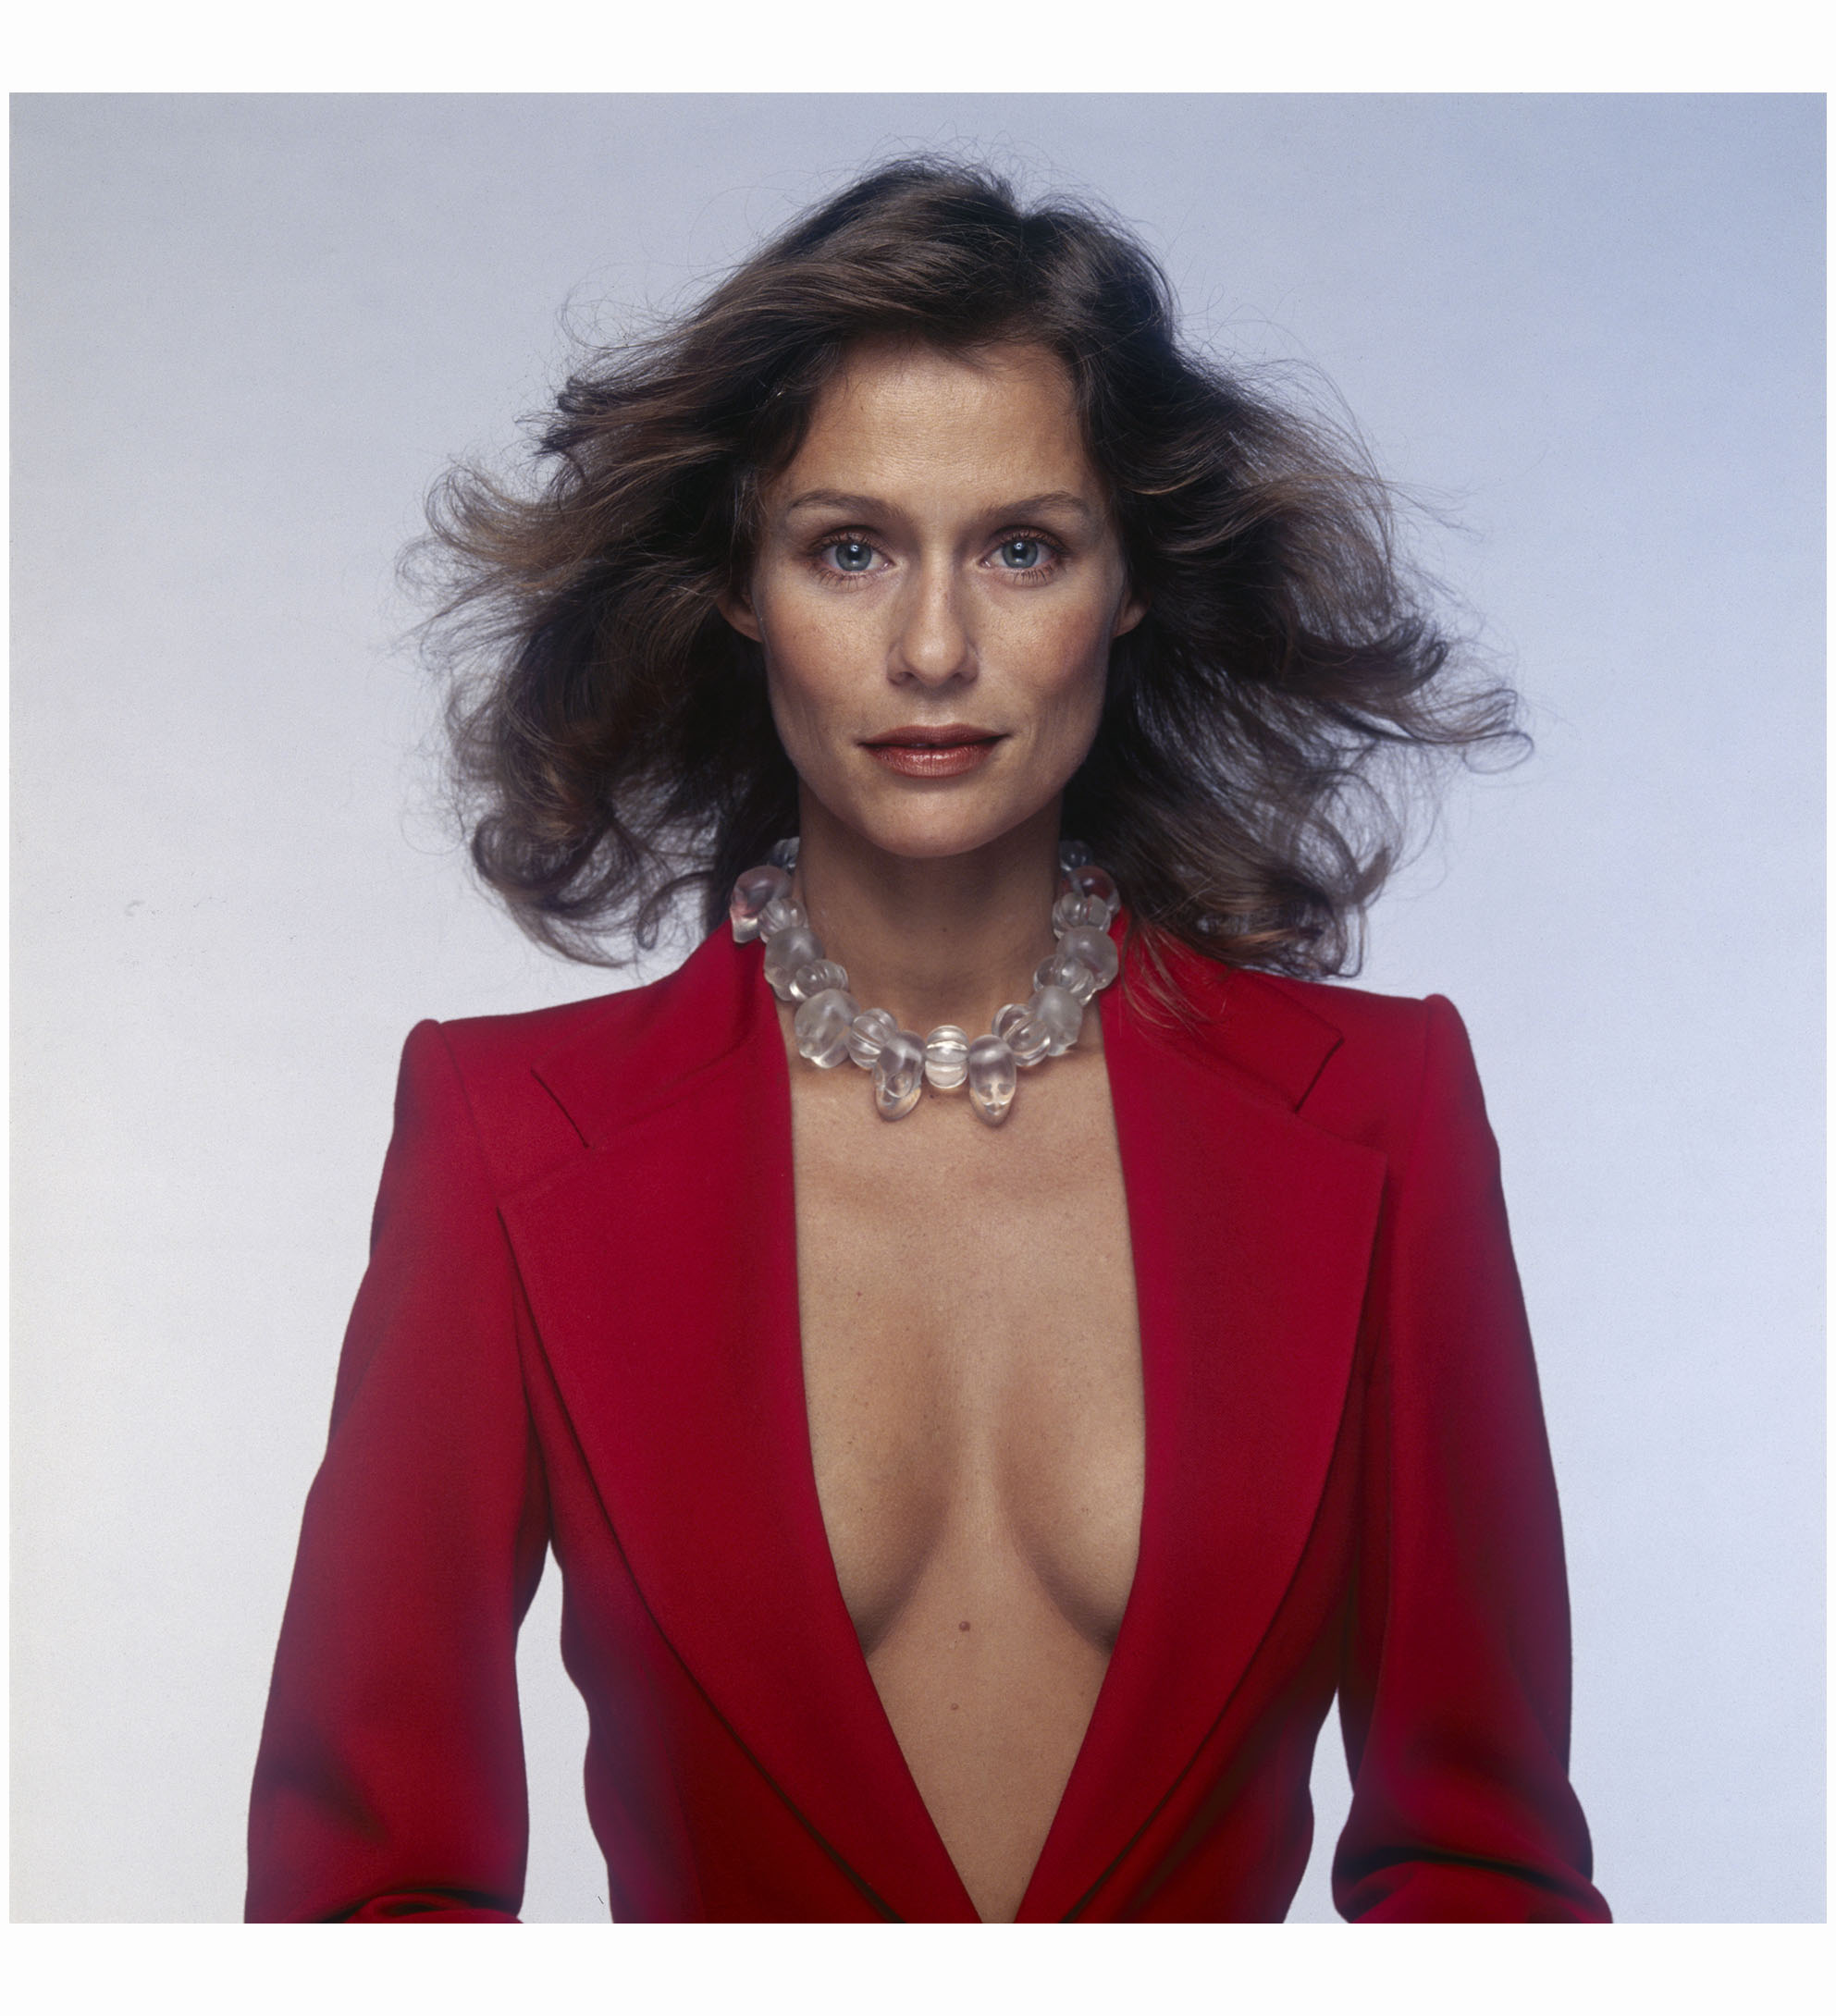 Lauren Hutton 169 Pleasurephoto